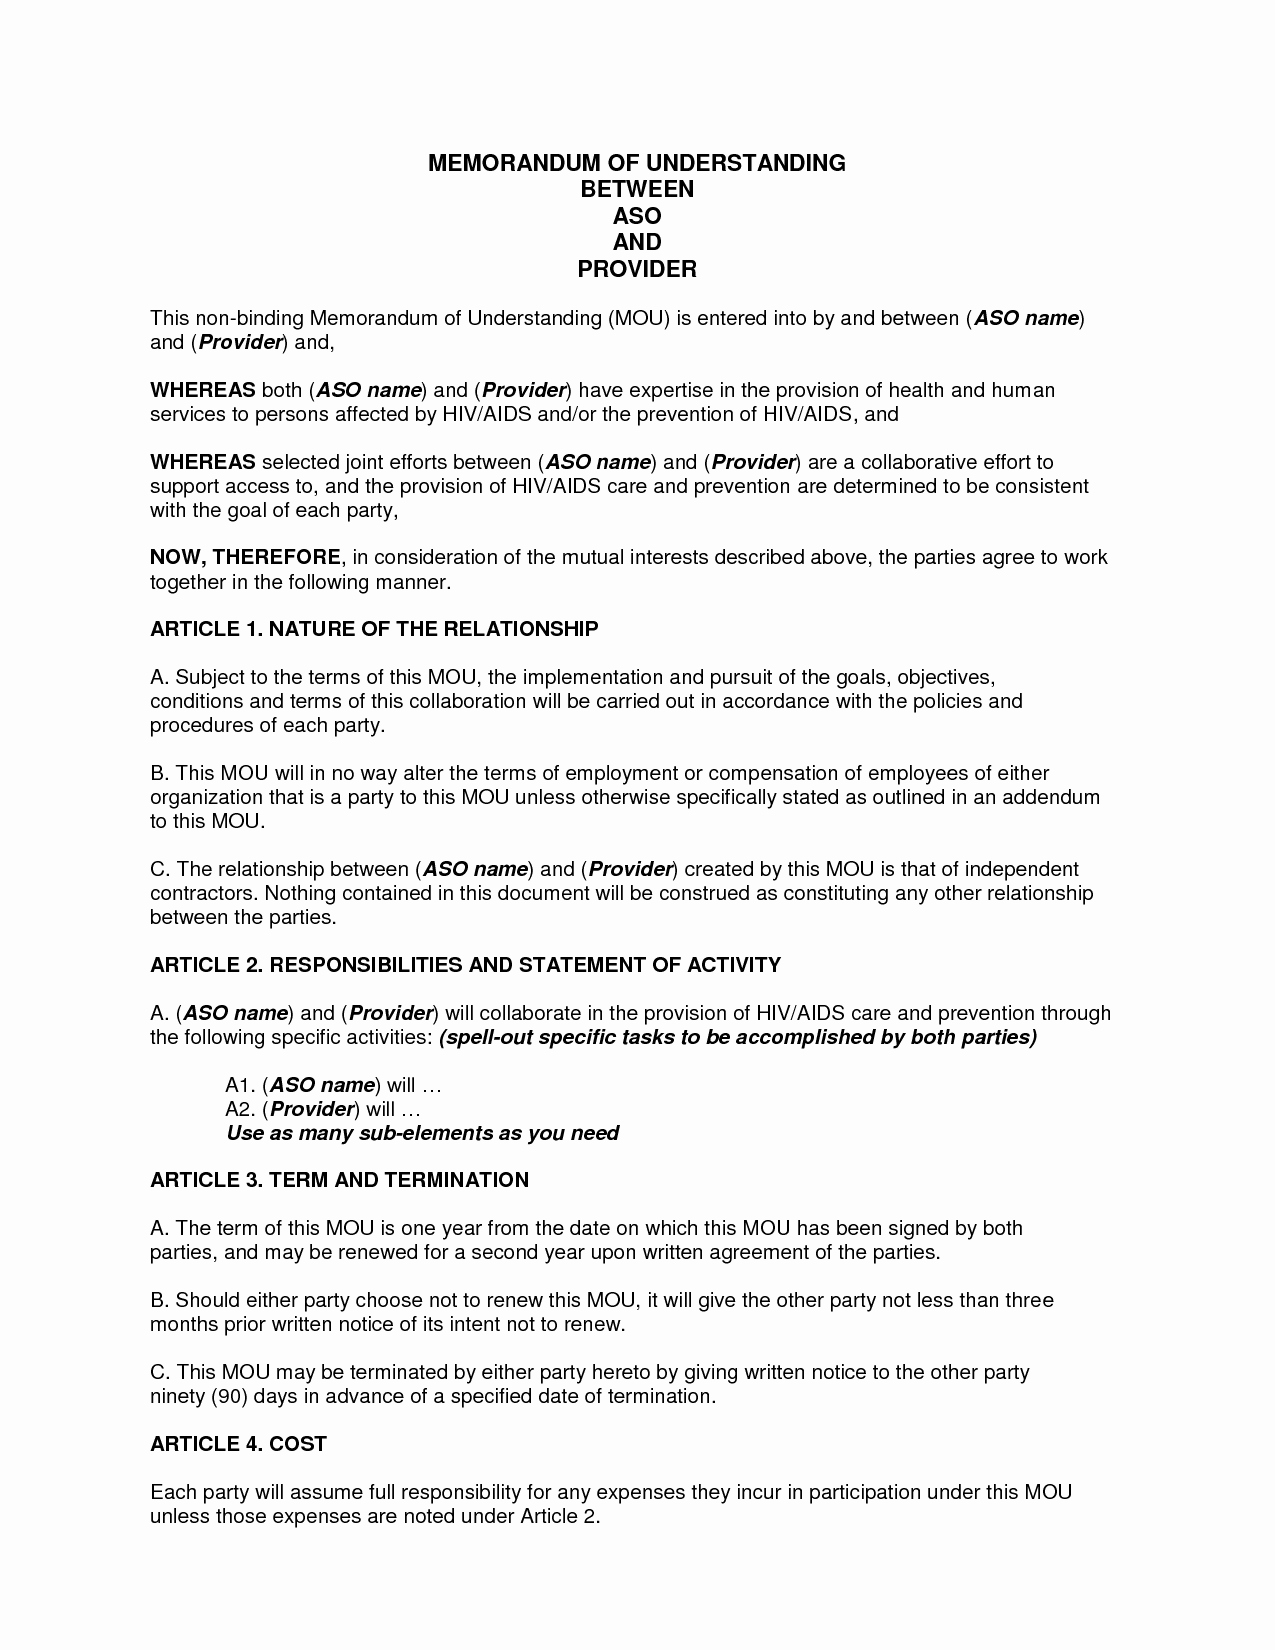 Memo Of Understanding Template Awesome Sample Memorandum Of Understanding Business Partnership